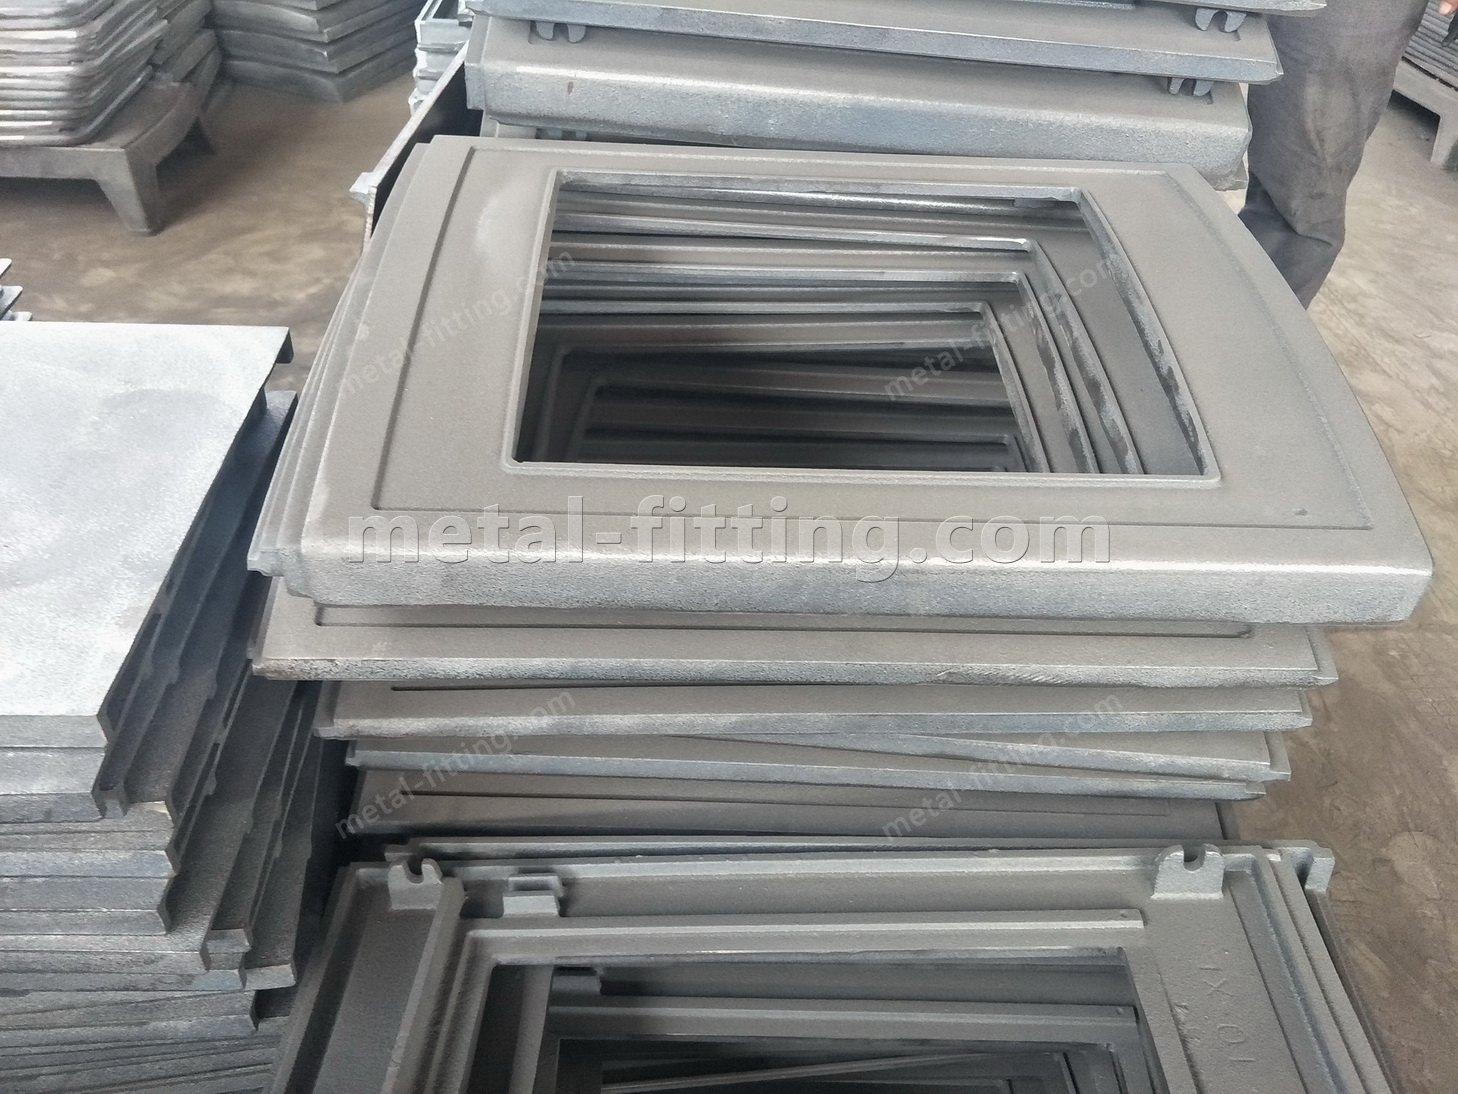 customization steel plate or other steel metal itemss-IMG20180726103026